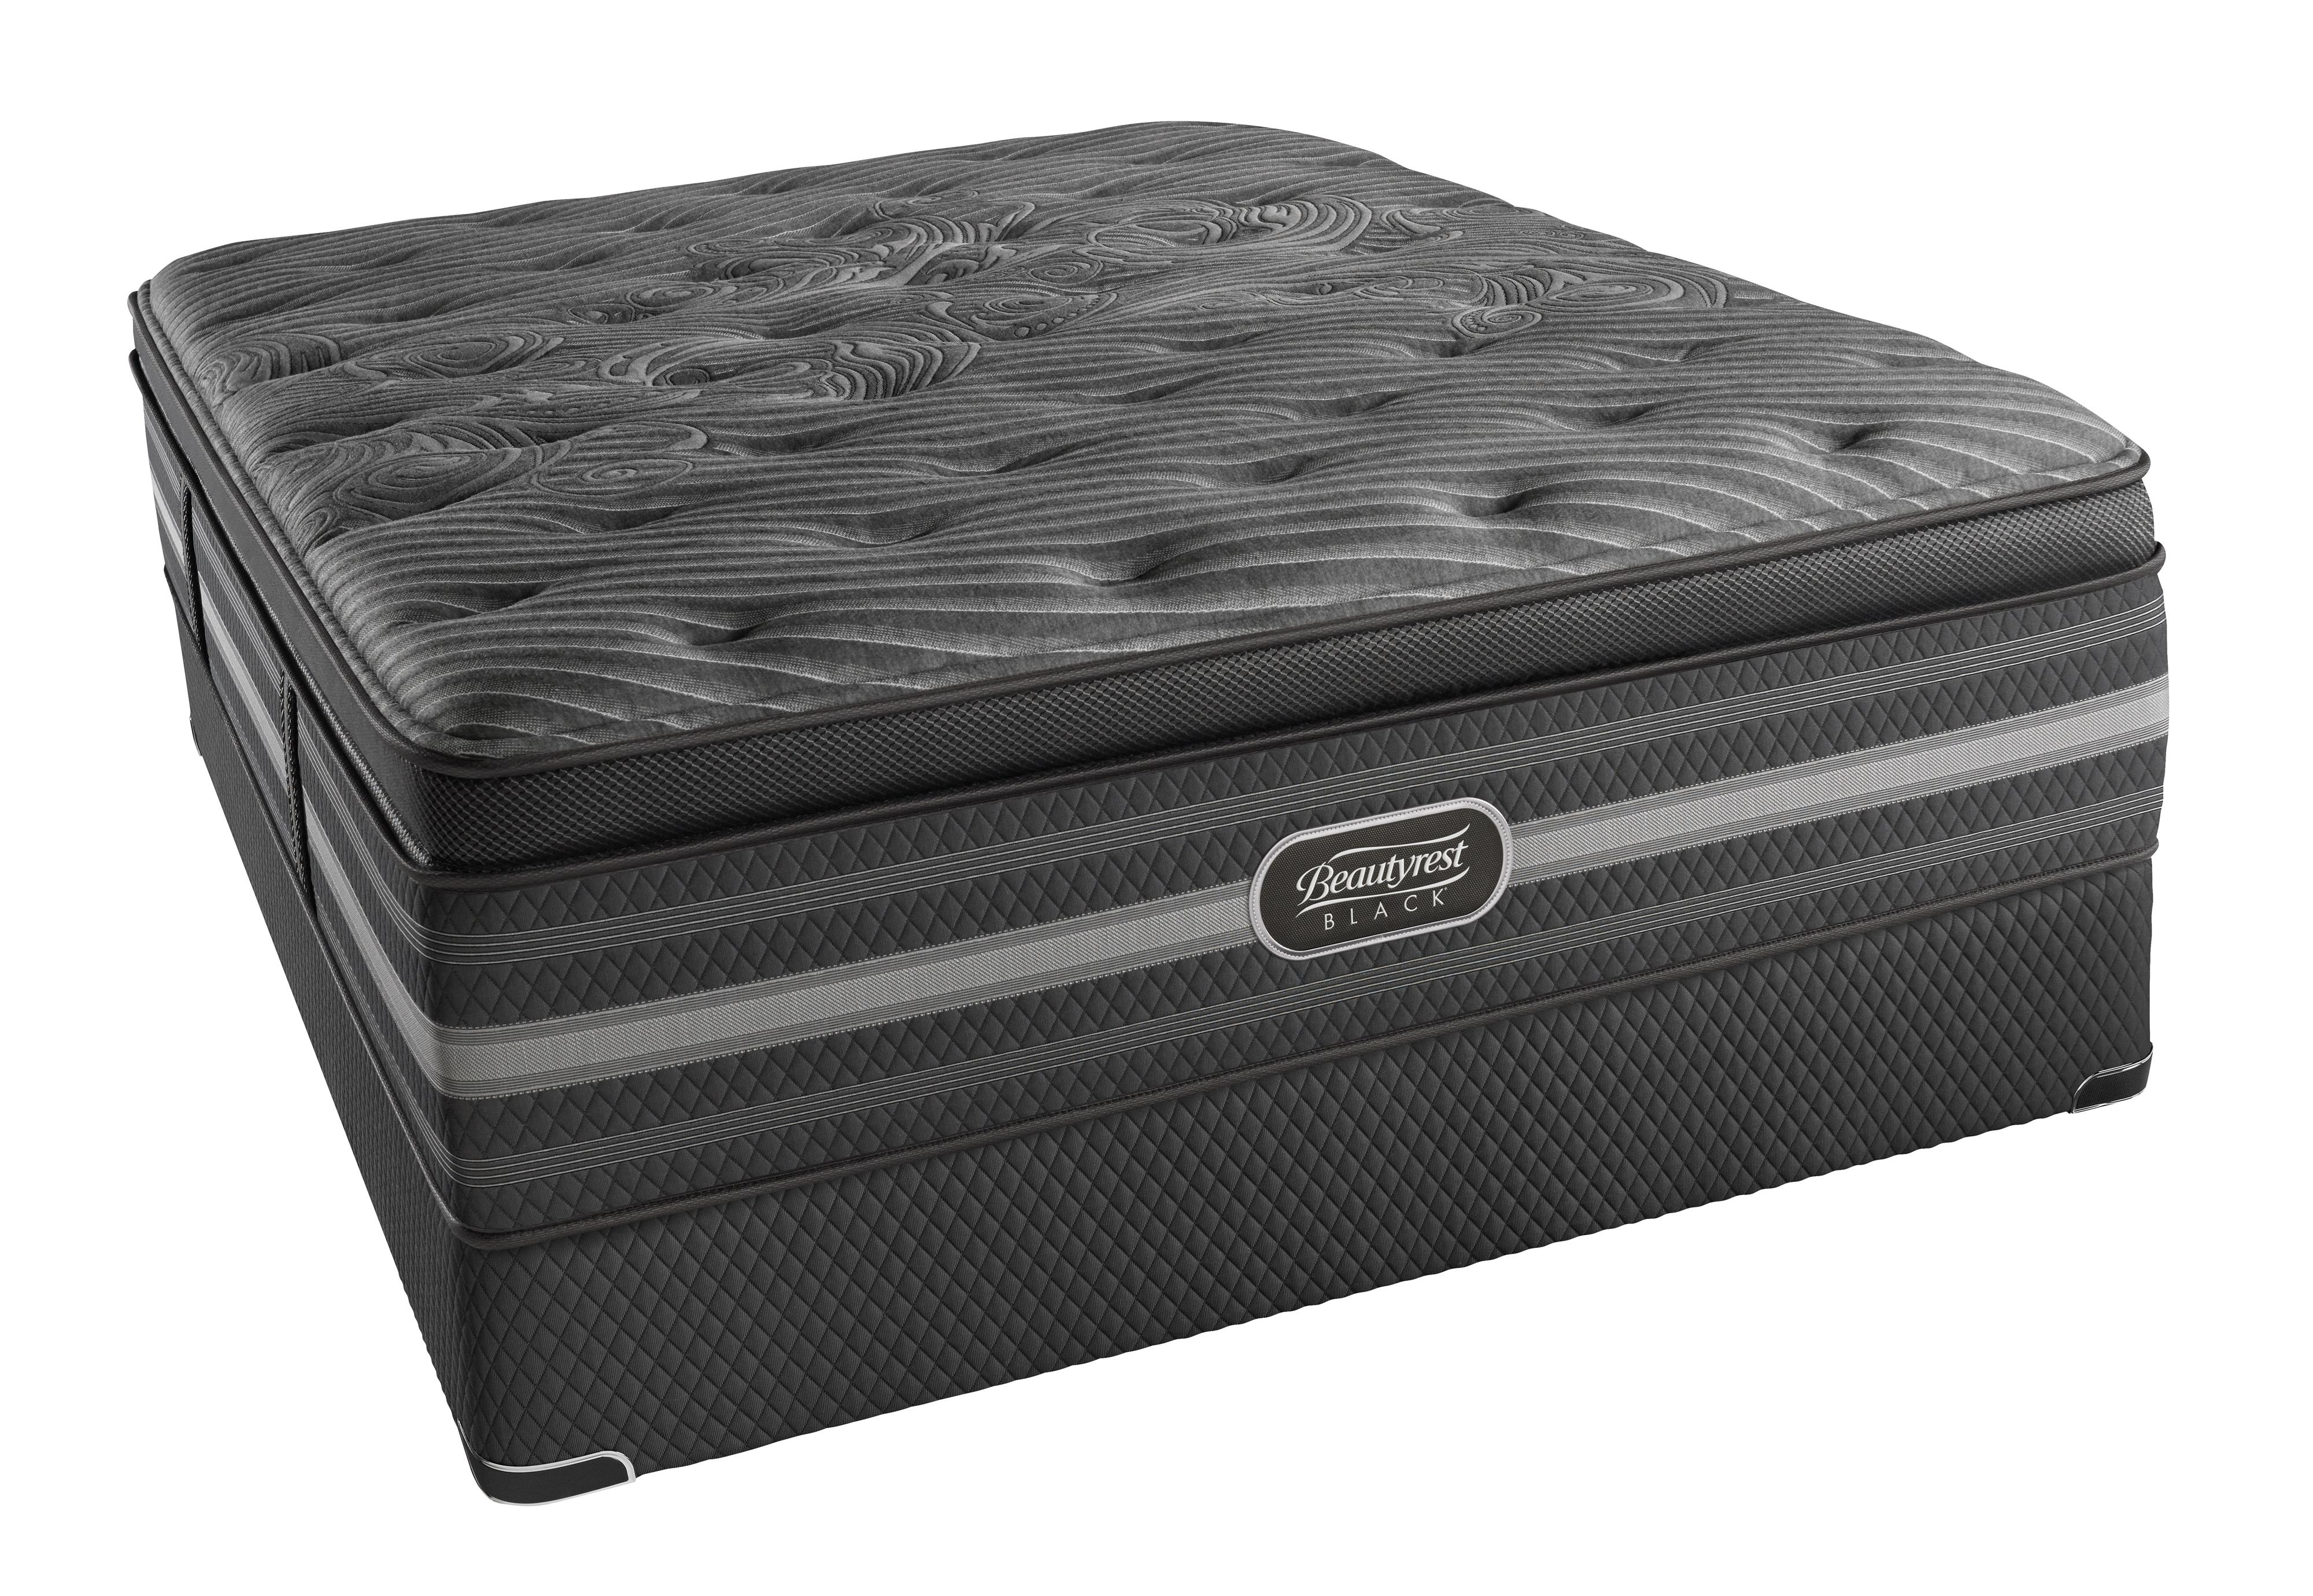 Beautyrest Black Natasha Full Ultra Plush P.T. Mattress Set, LP by Beautyrest at Pilgrim Furniture City